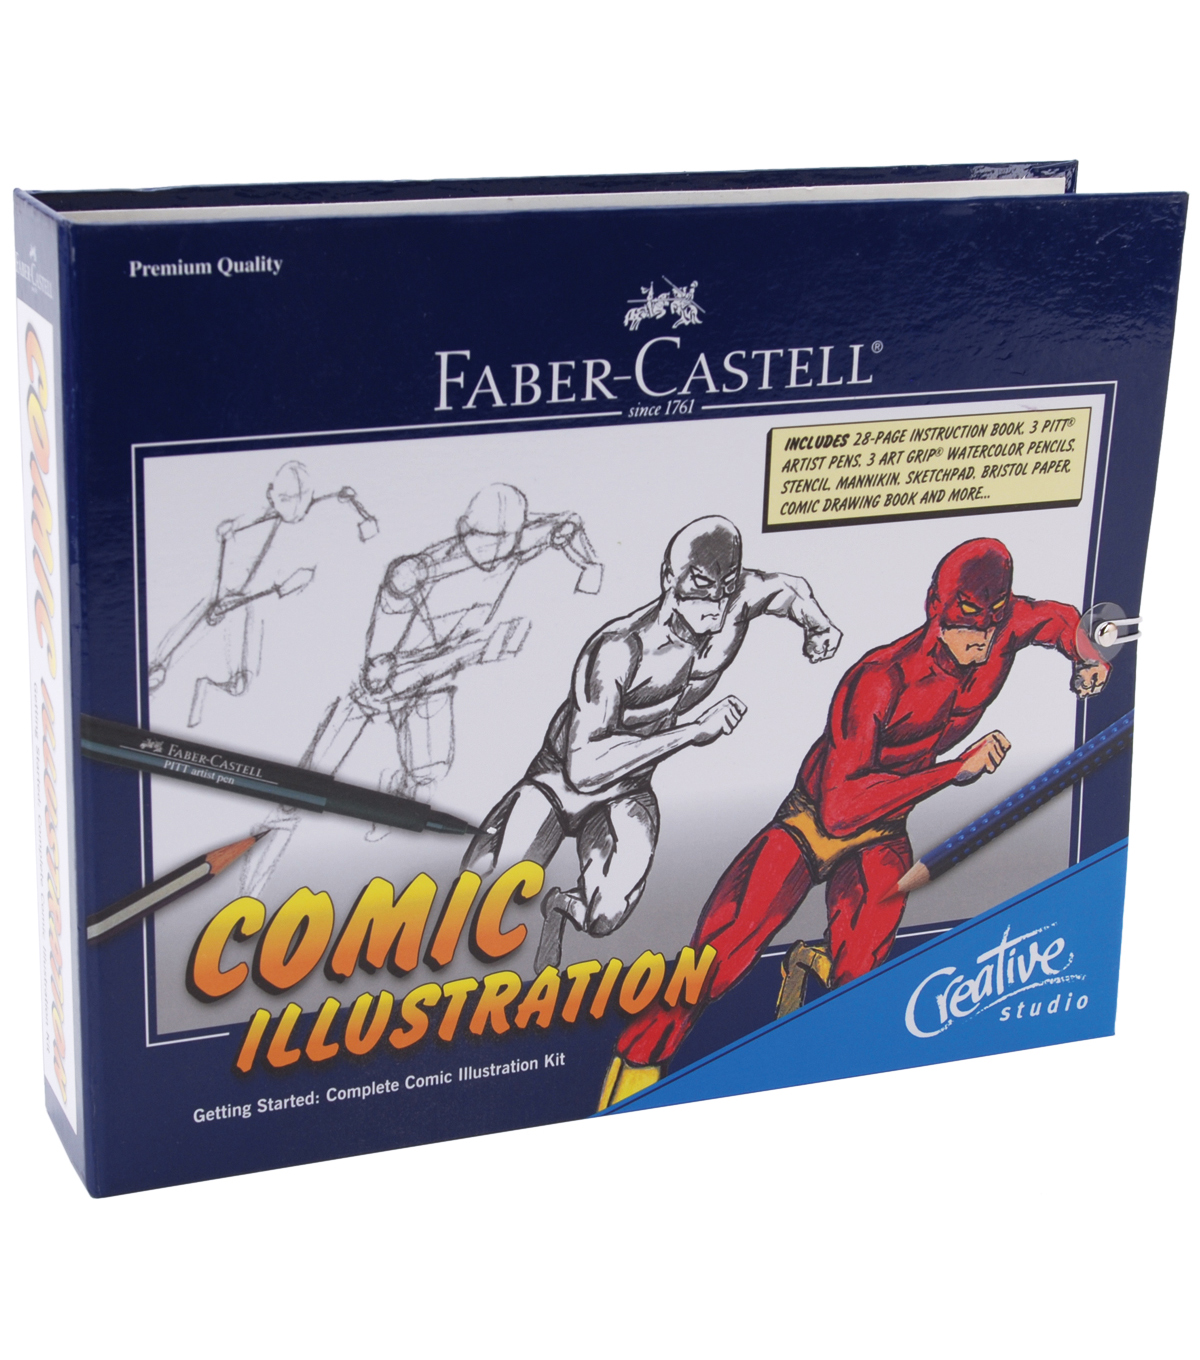 Comic Illustration Kit Set